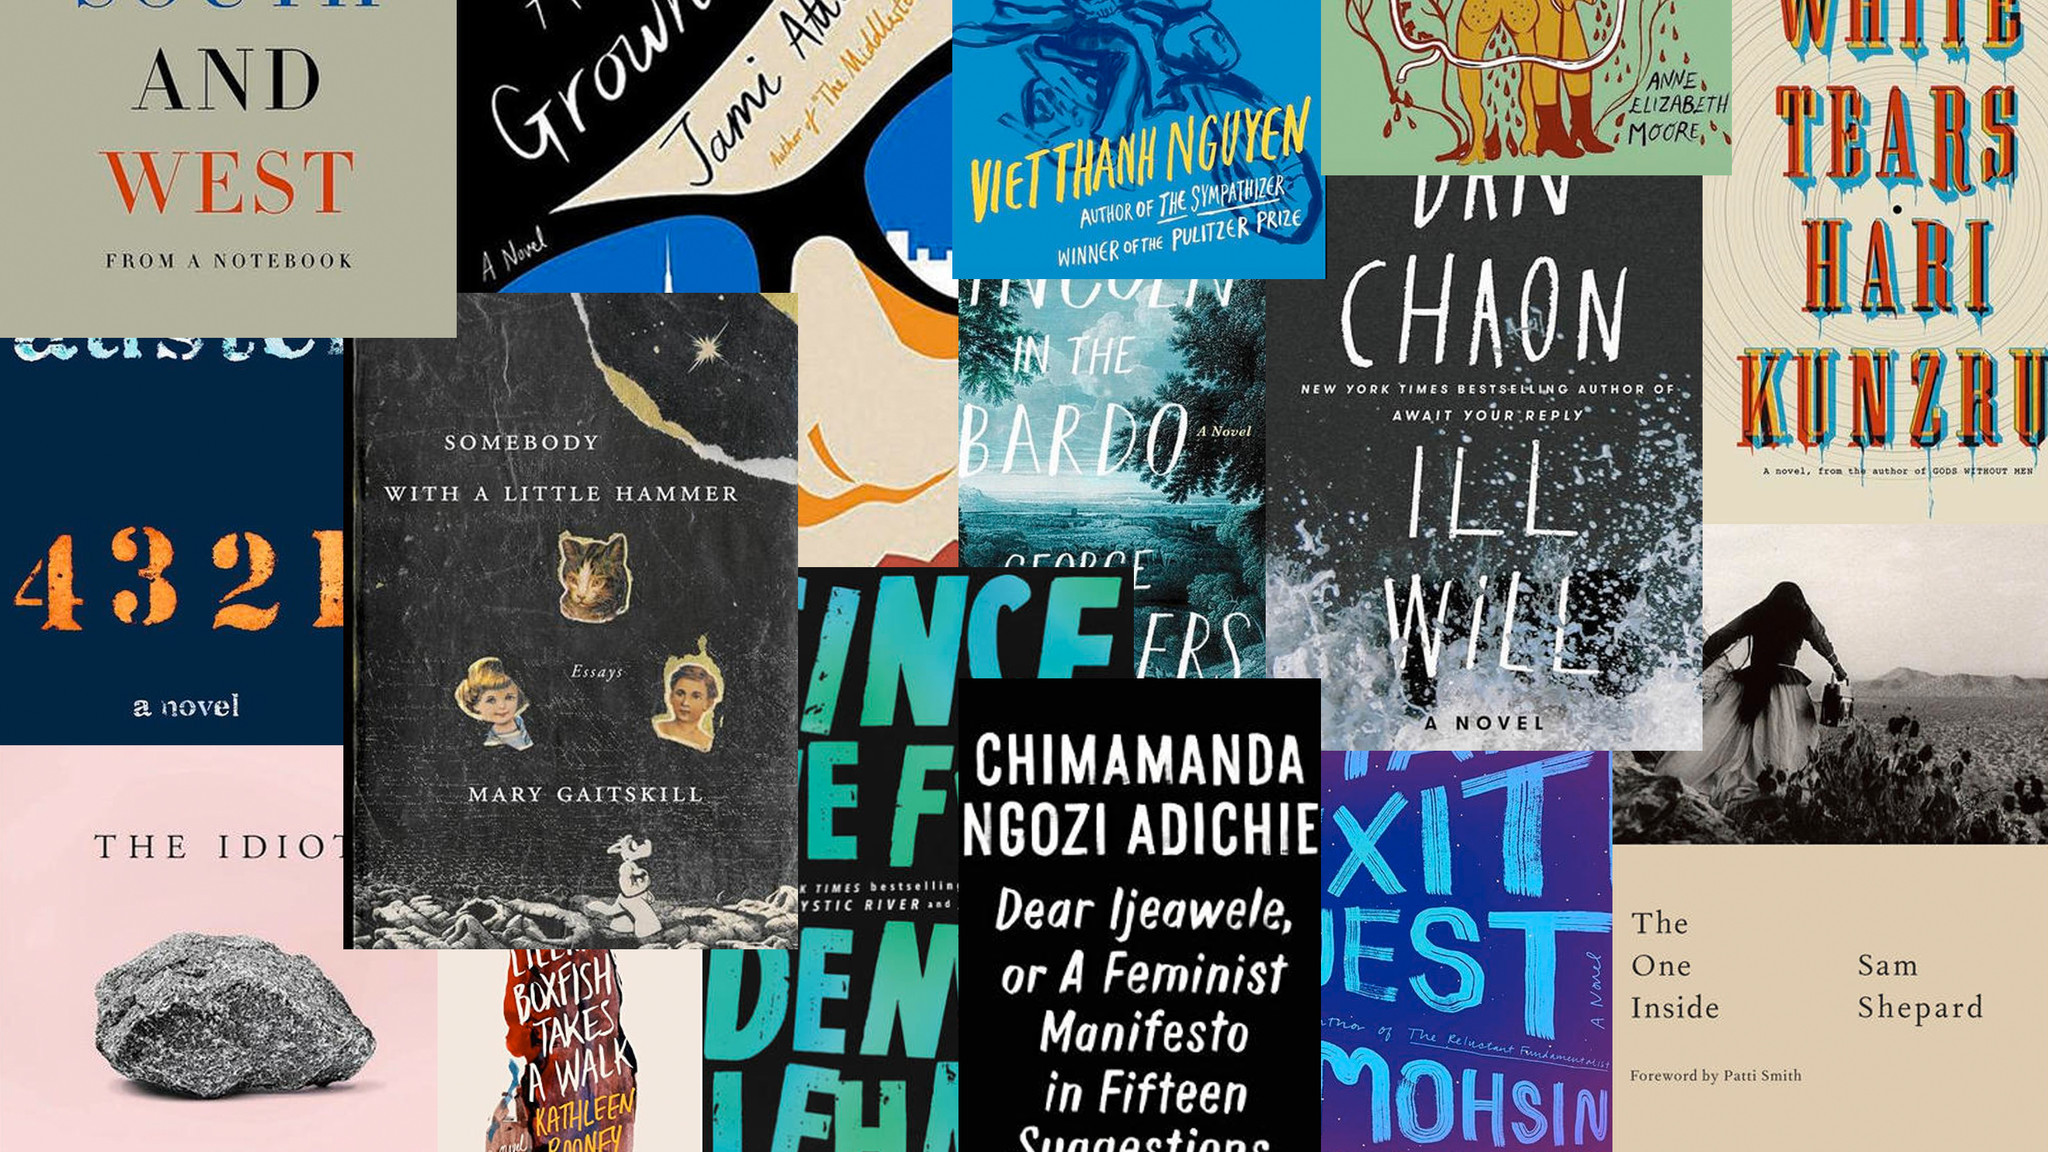 34 books we're excited about in 2017